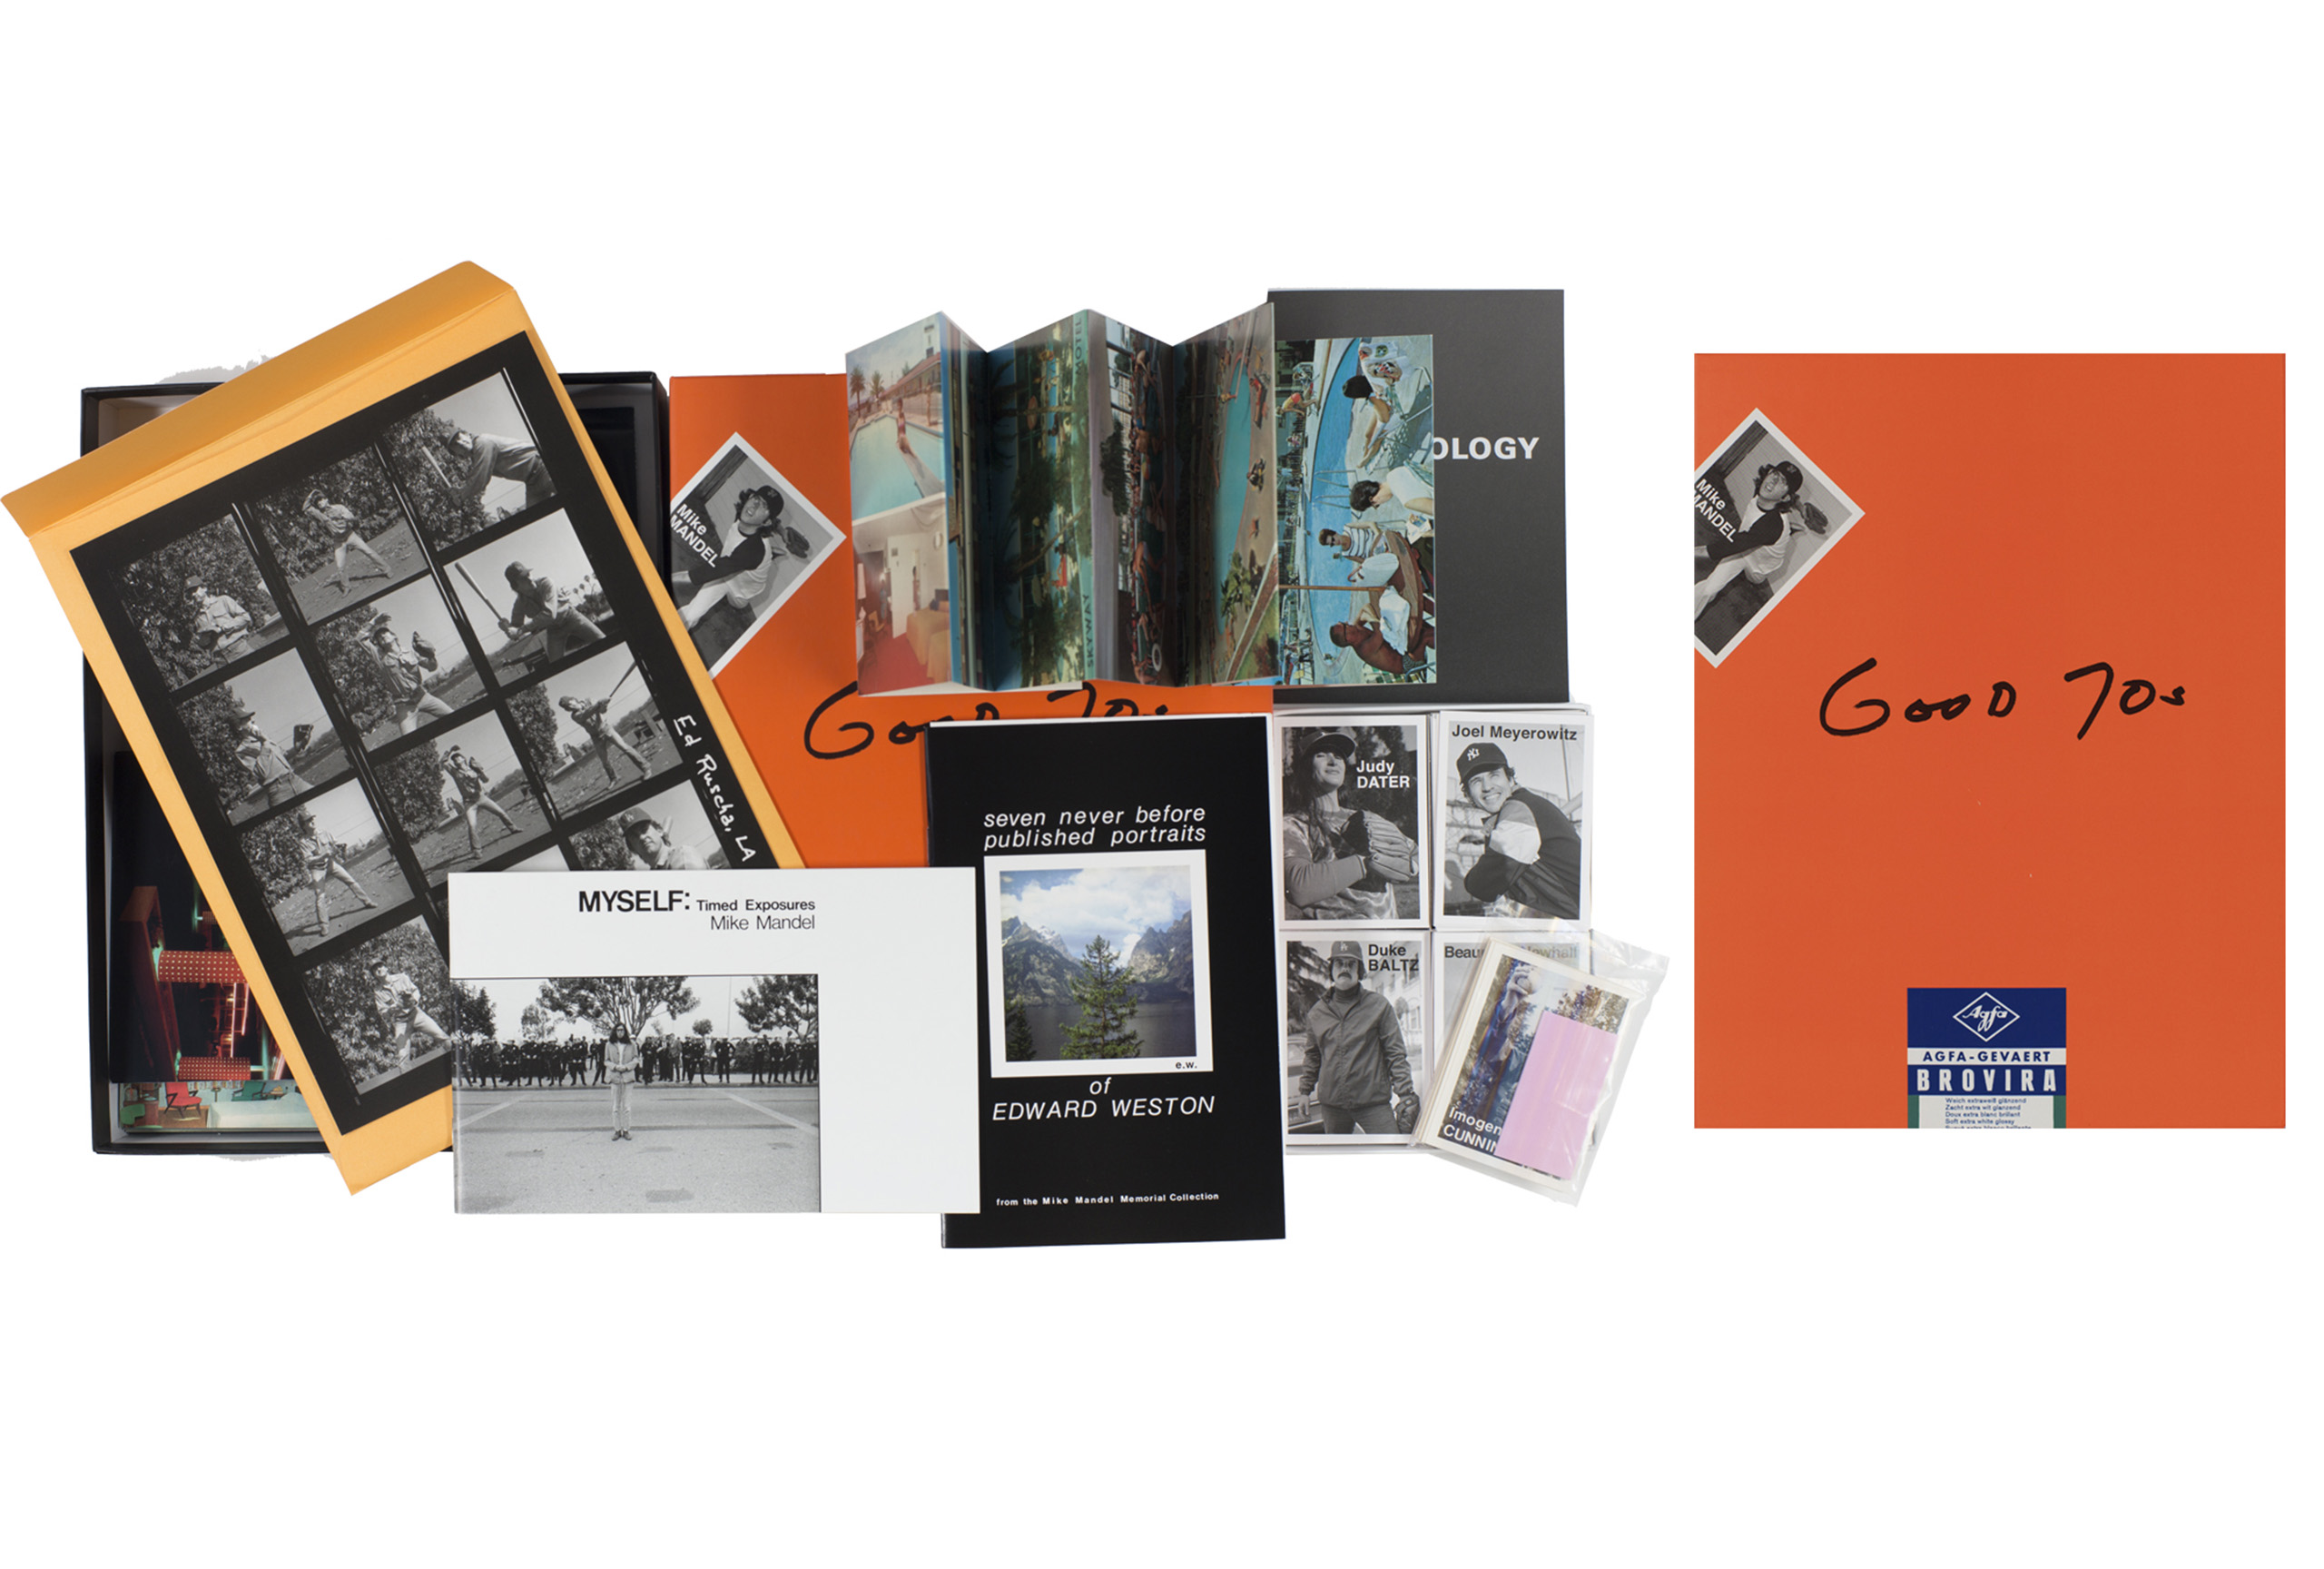 Good 70s by Mike Mandel, published by J&L Books/D.A.P.. Short-listed for PhotoBook of the Year.